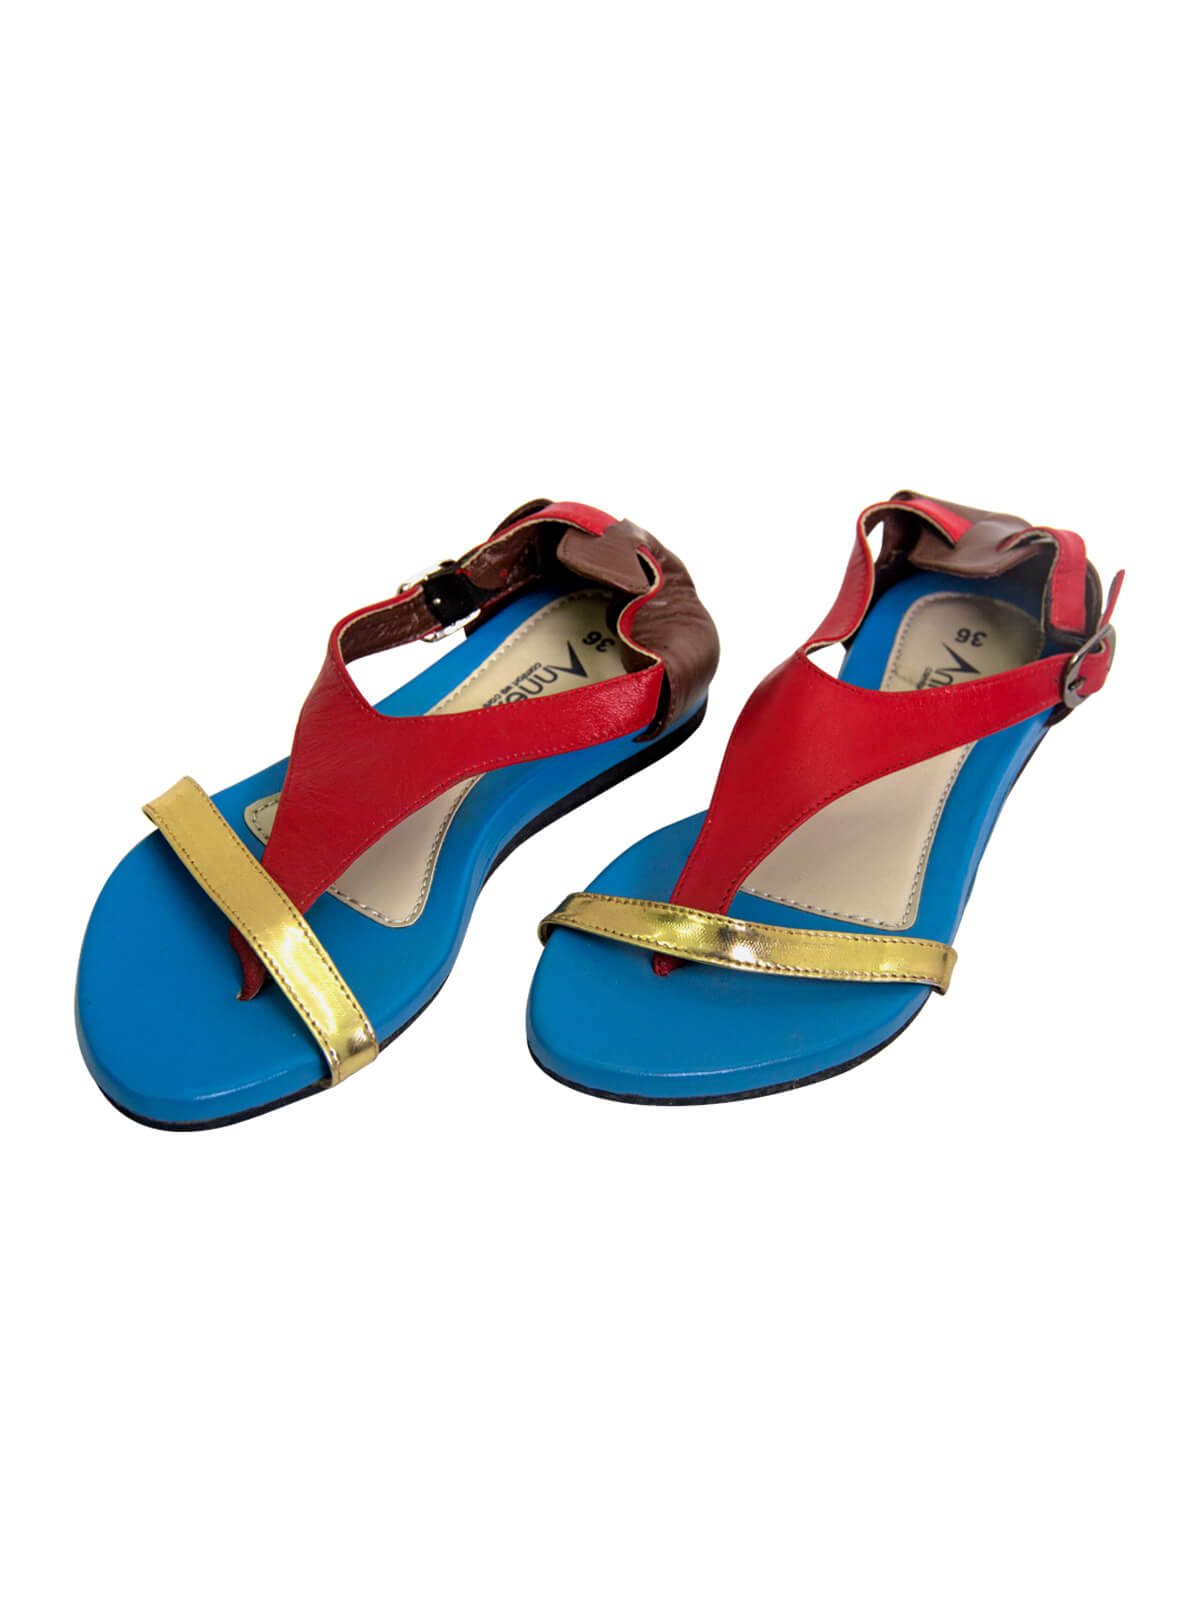 Red and Blue Ladies Sandal